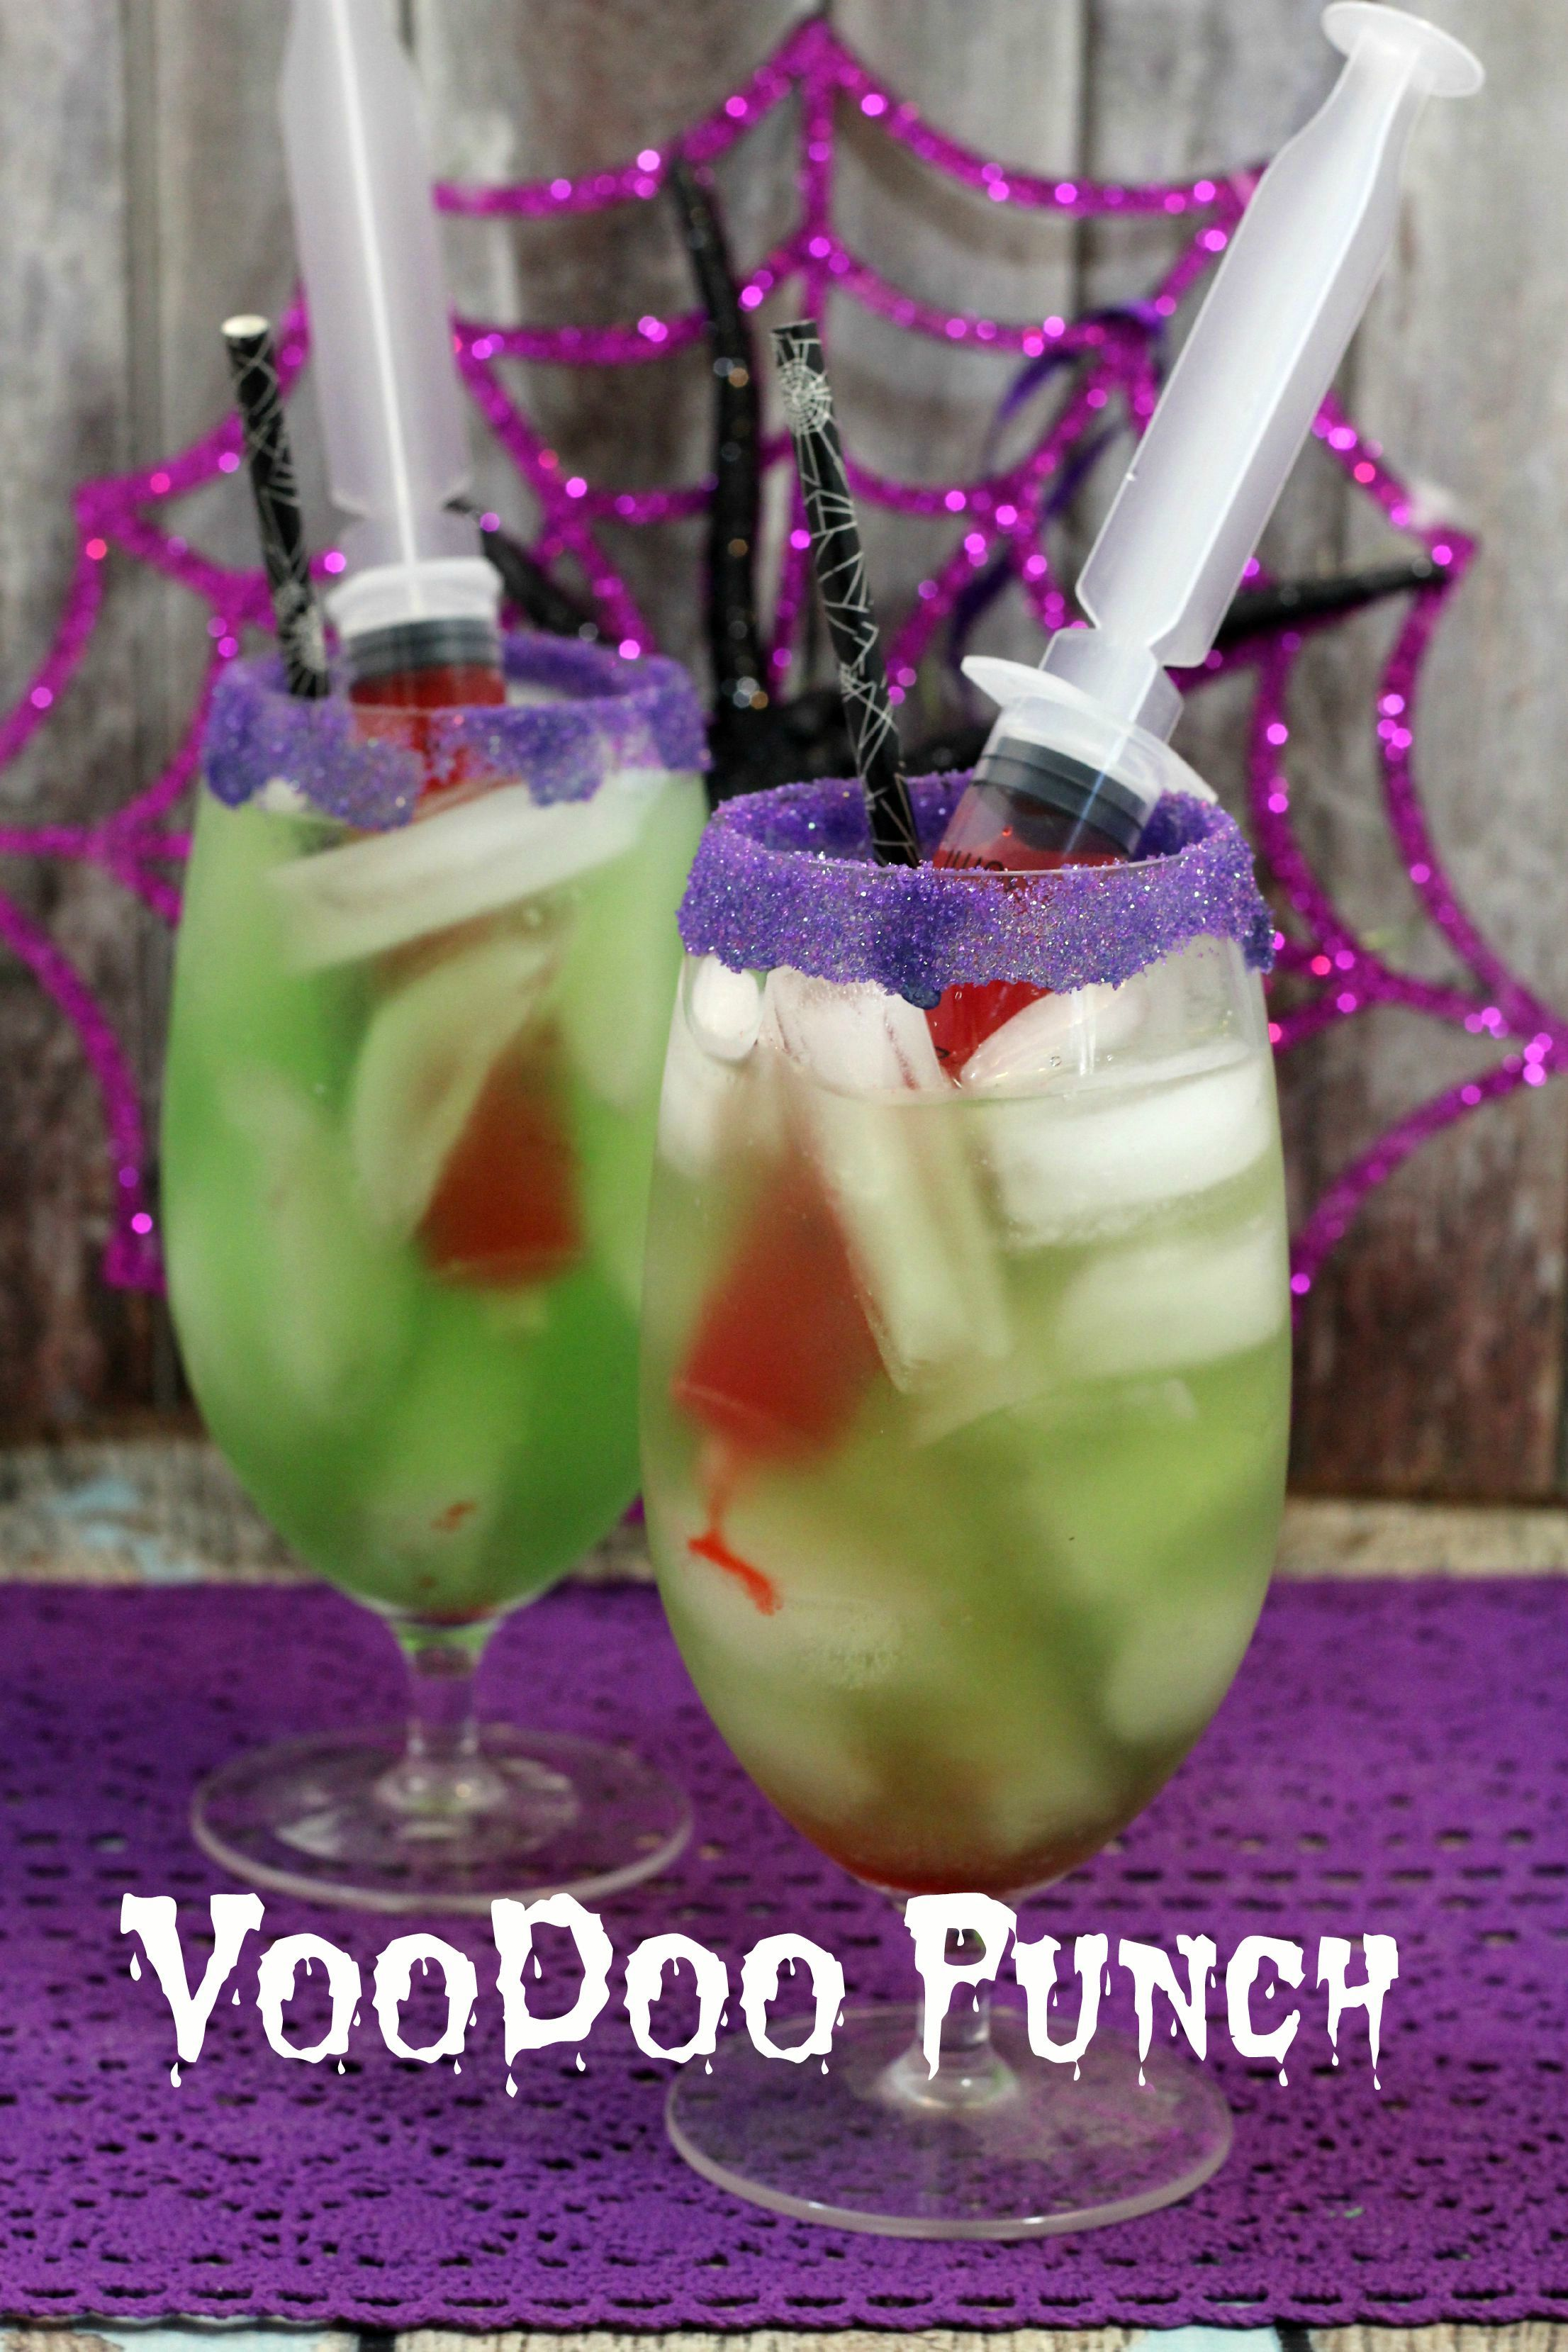 voodoo punch perfect halloween party drink halloween drinks - Halloween Themed Alcoholic Shots